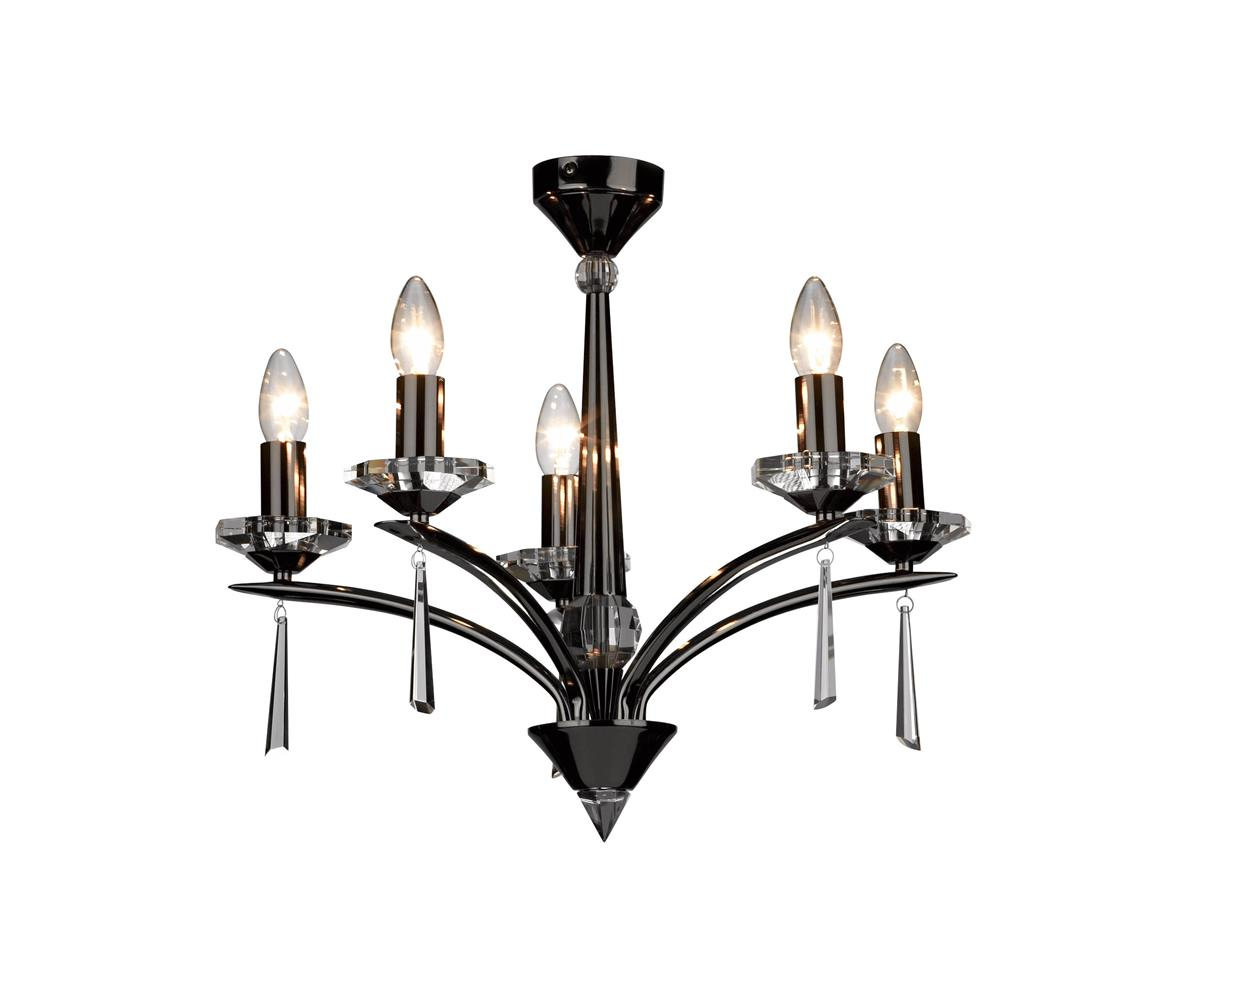 Dar HYP193 Hyperion spare decorative finial polished chrome